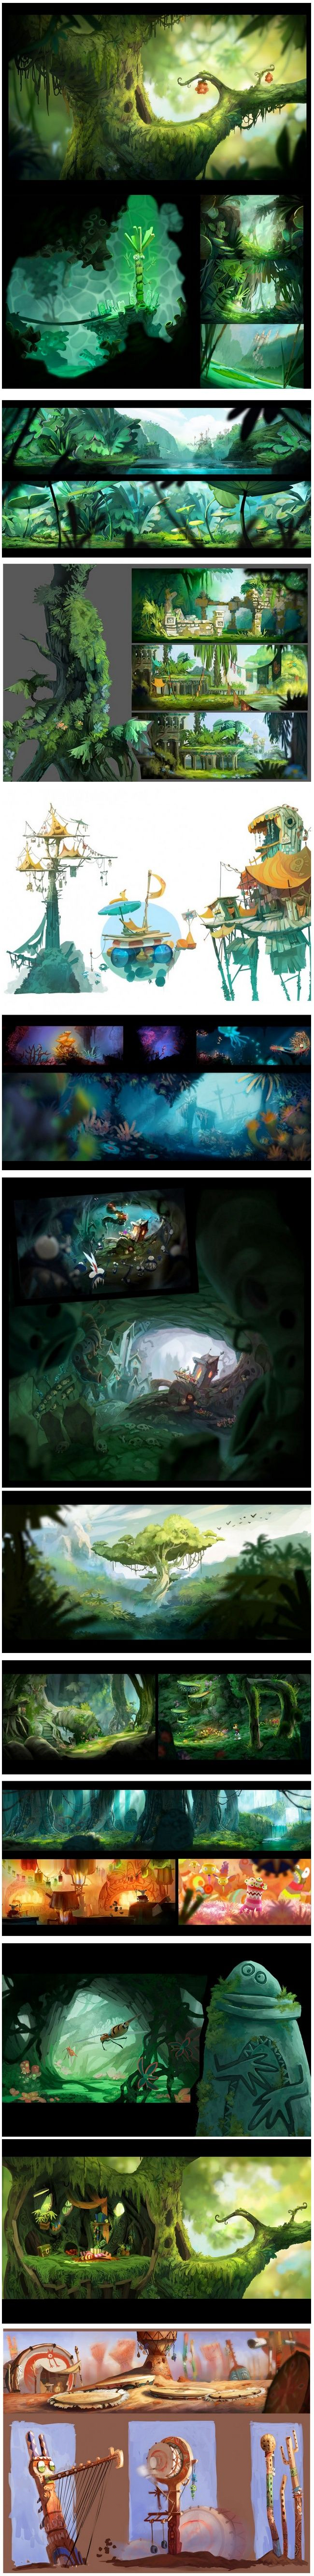 Rayman Origins by Floriane Marchix... Great background designs idea's for animation and motion graphics.: